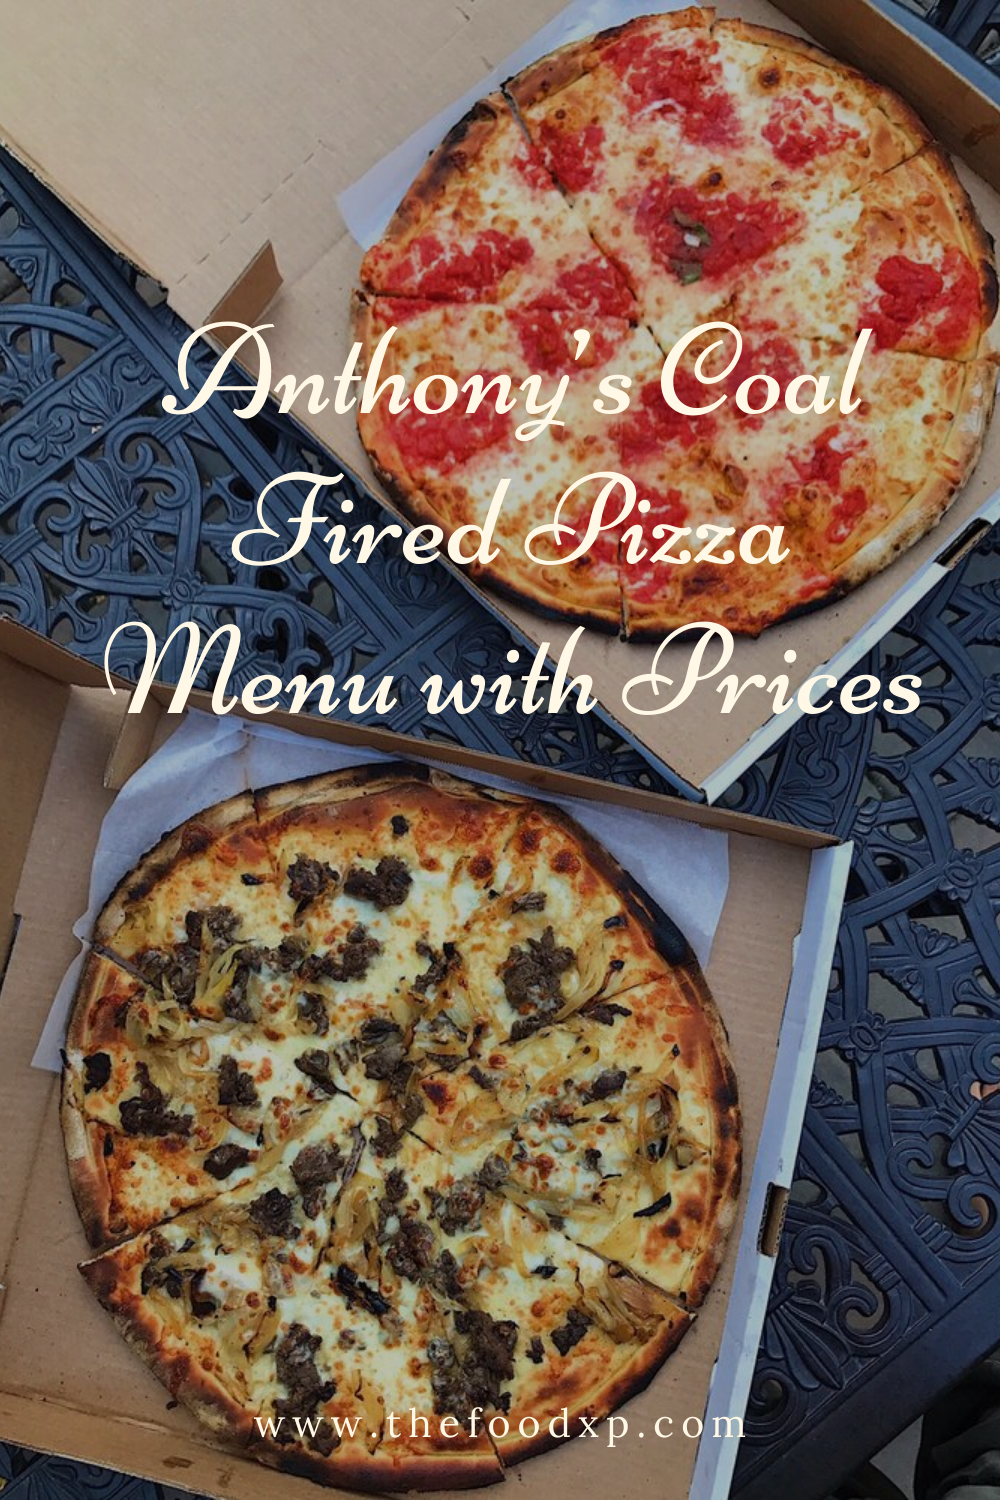 Anthony S Coal Fired Pizza Menu With Prices In 2021 Pizza Menu Fire Pizza Authentic Recipes